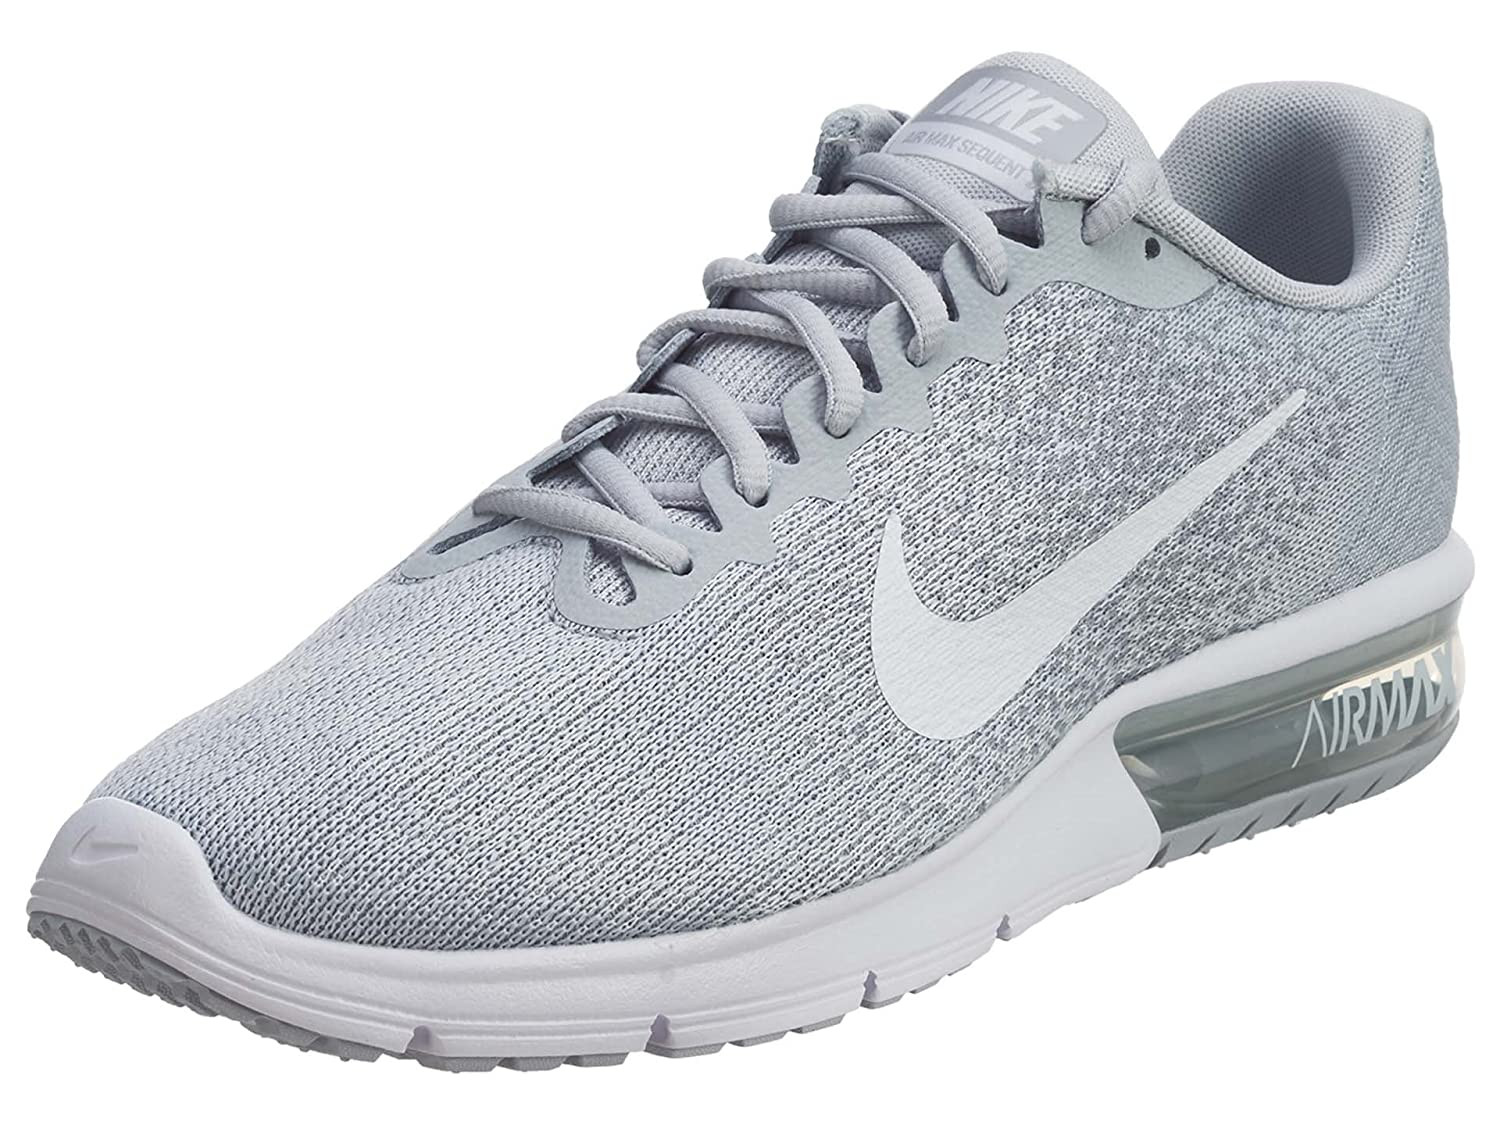 adca69485b2 Nike Men Air Max Sequent 2 Running Sneakers From Finish Line Running good.